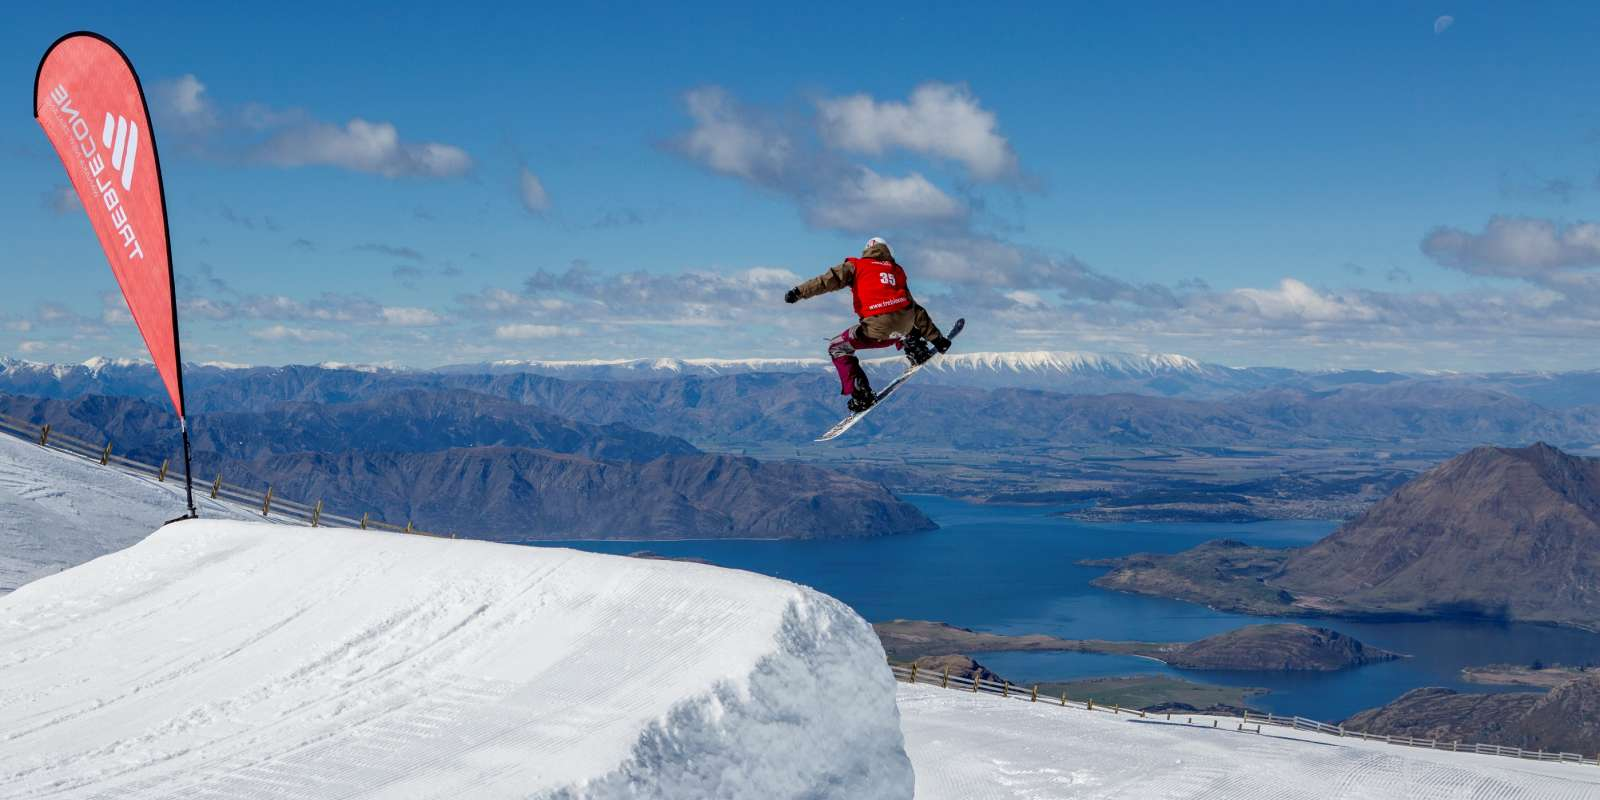 Treble Cone Intermediate Park